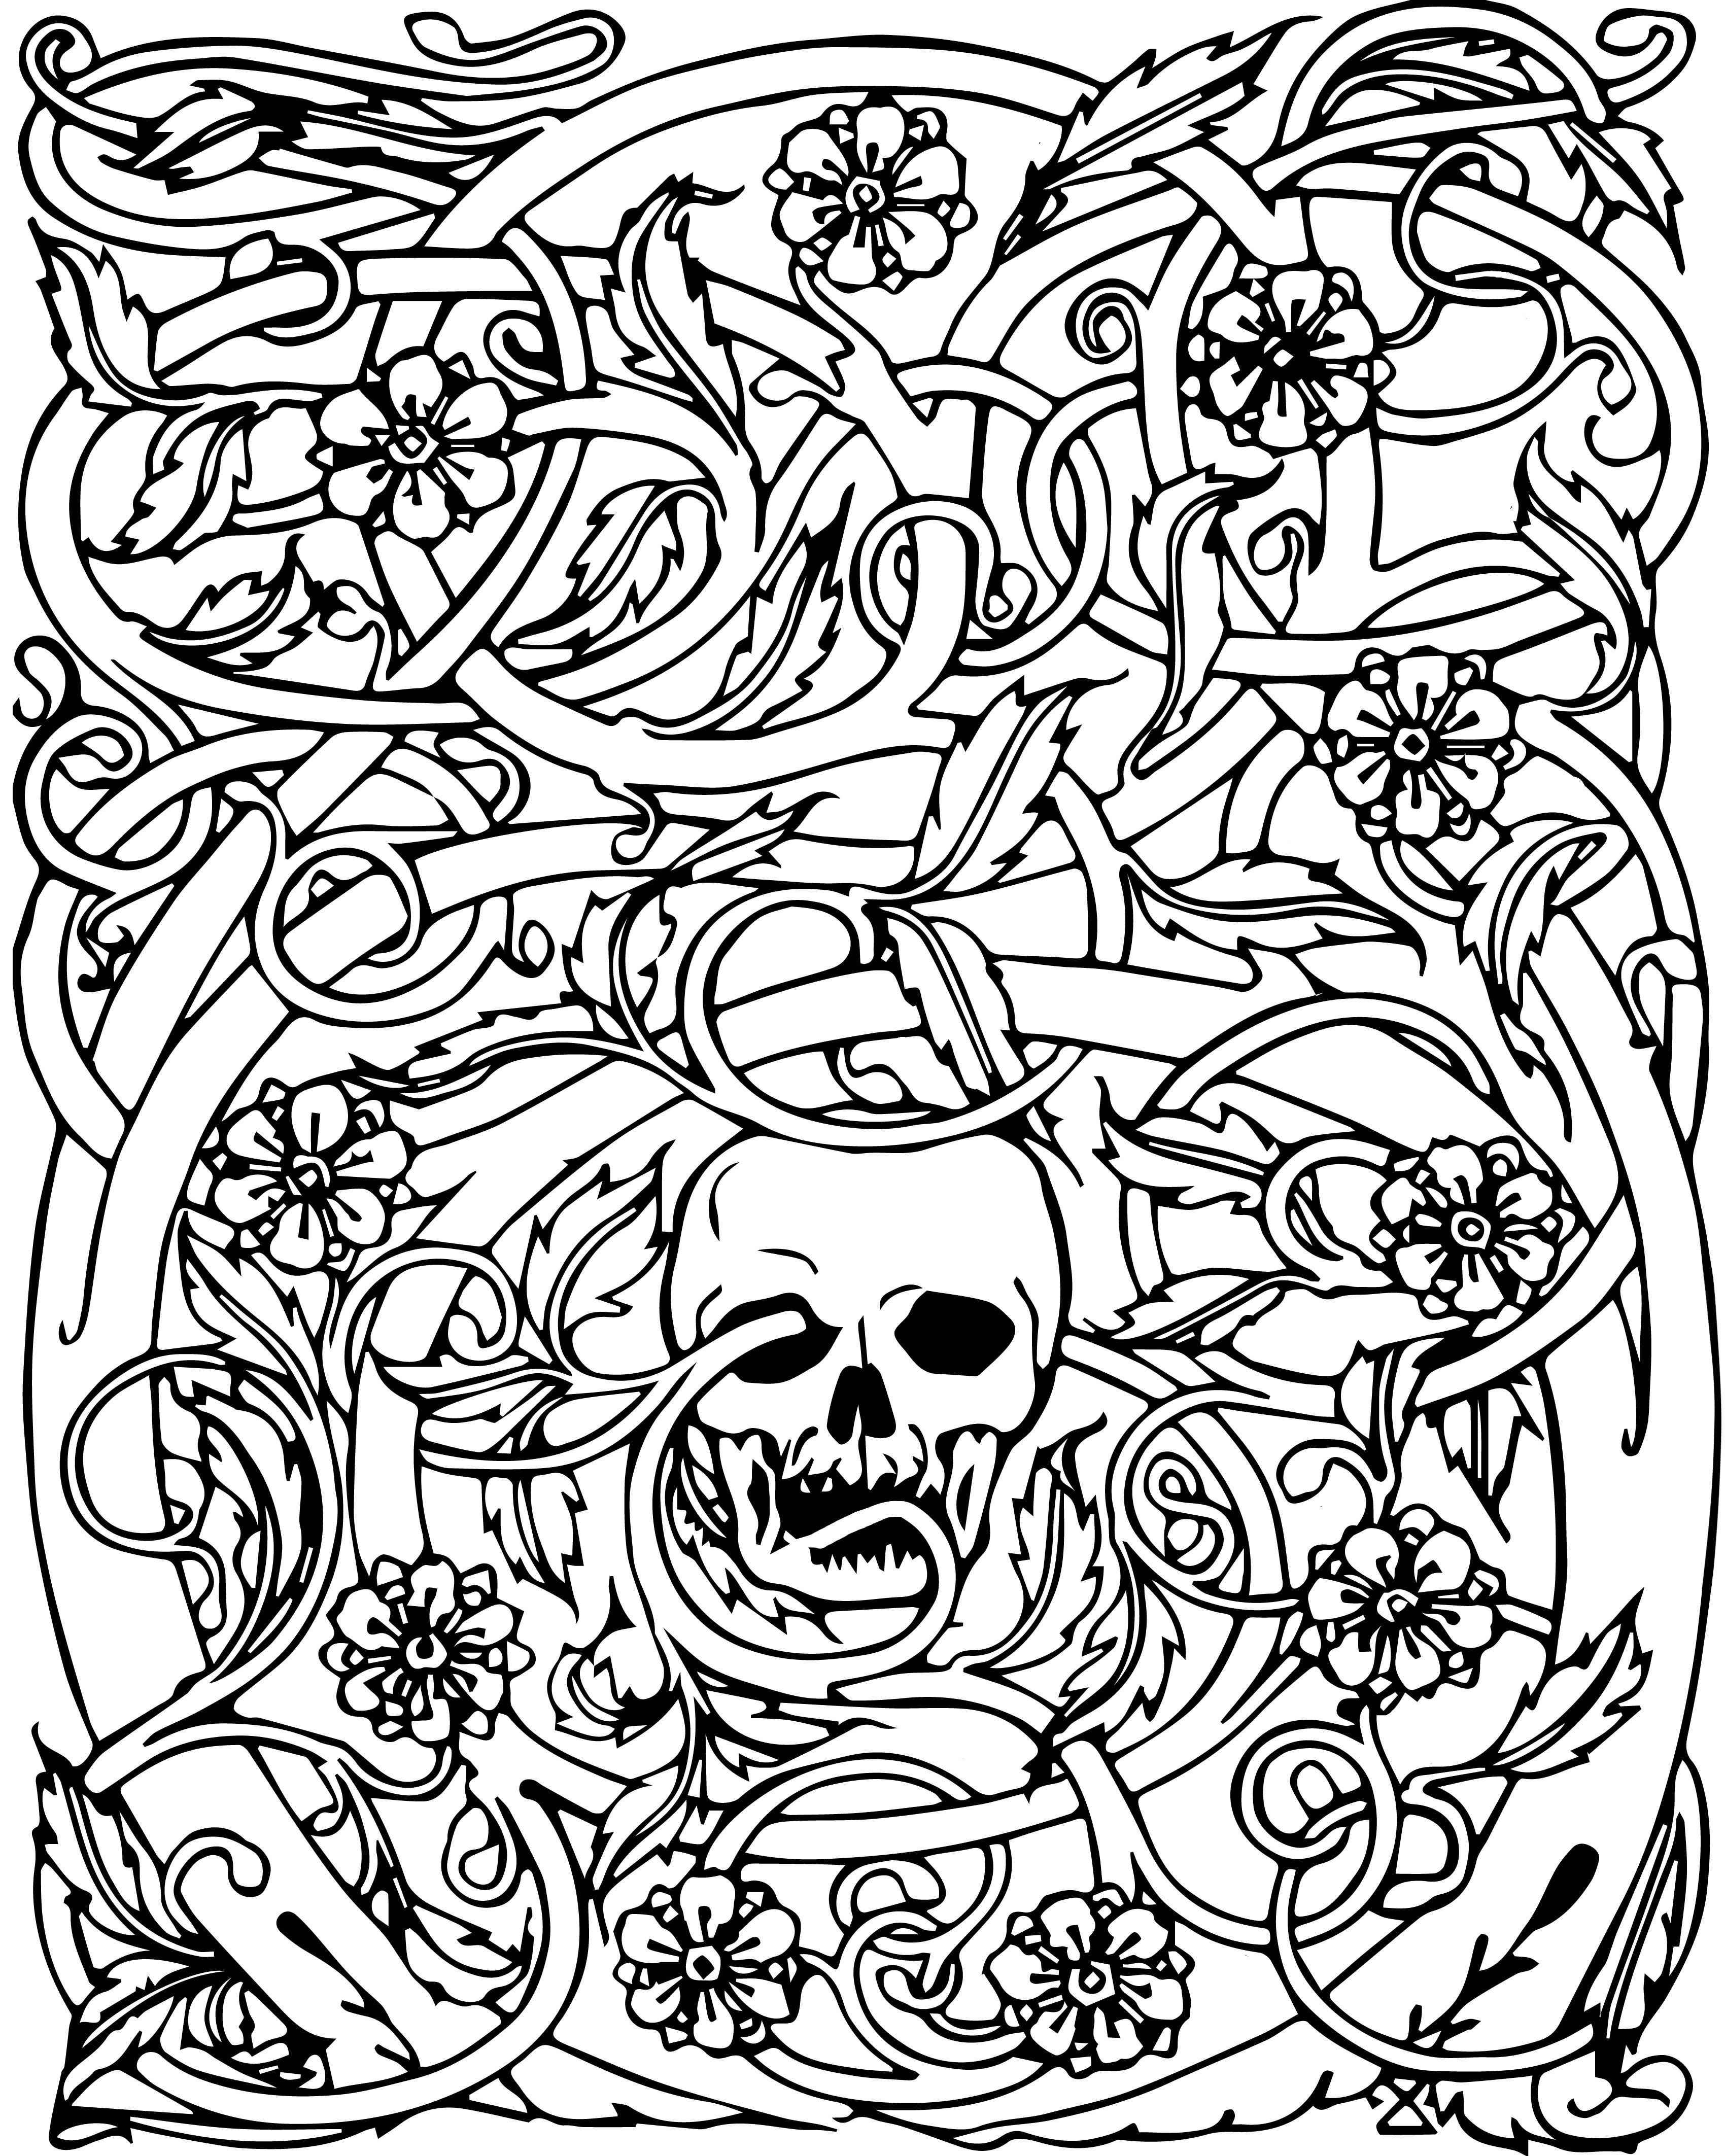 Cool Skull Coloring Pages  Collection 17f - To print for your project